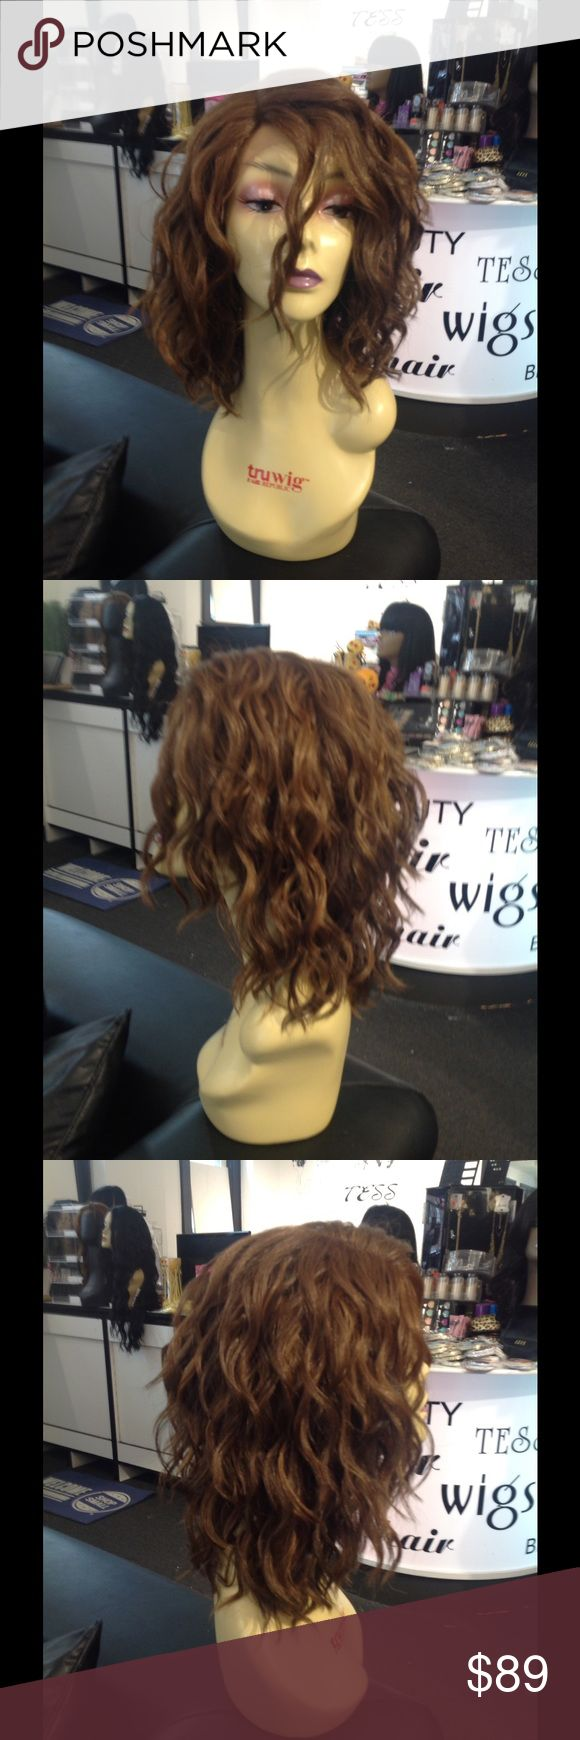 Swisslacefront wig water wave pattern 427/30 Beautiful New in stock testing the waters this is a new wig I only order thus color to see your responses put a like if you love her Accessories Hair Accessories